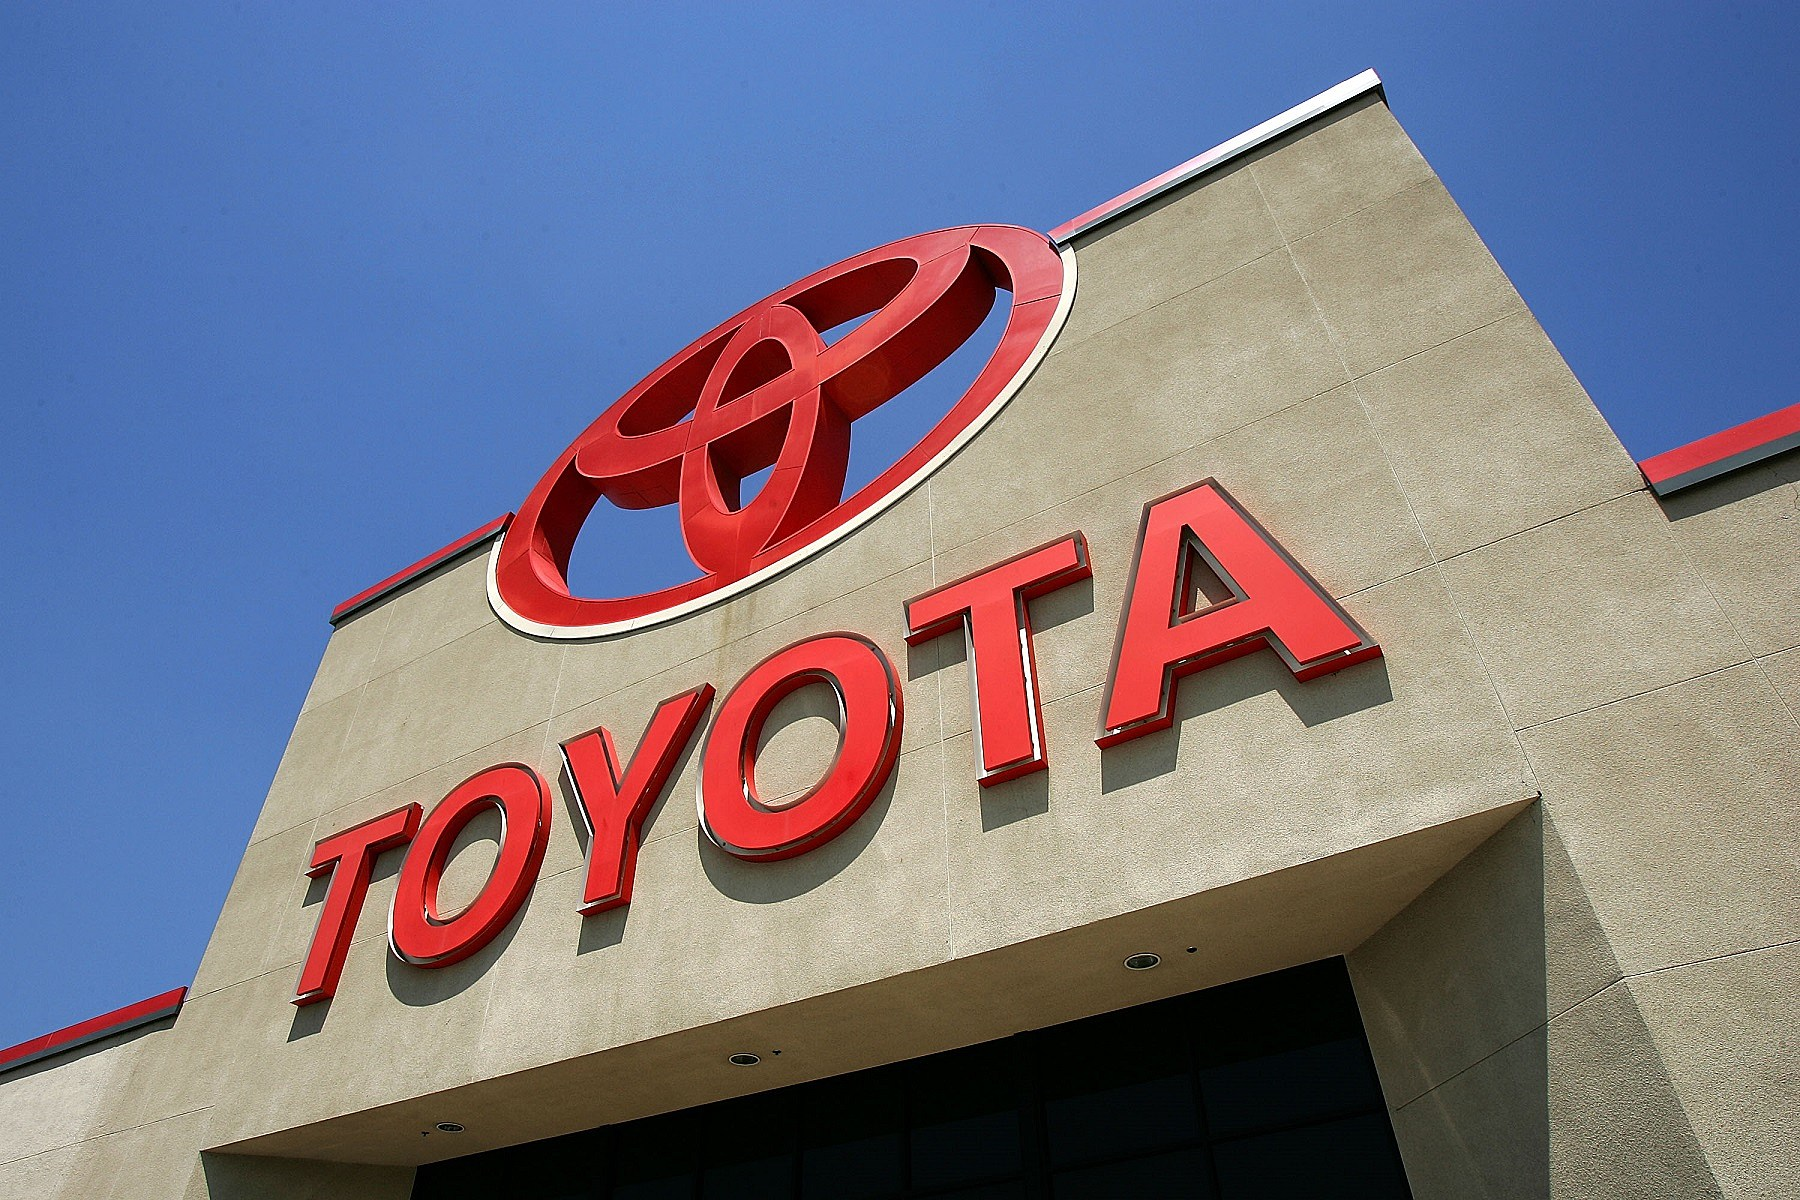 Cedar Rapids Could Be Home to Massive Toyota Plant